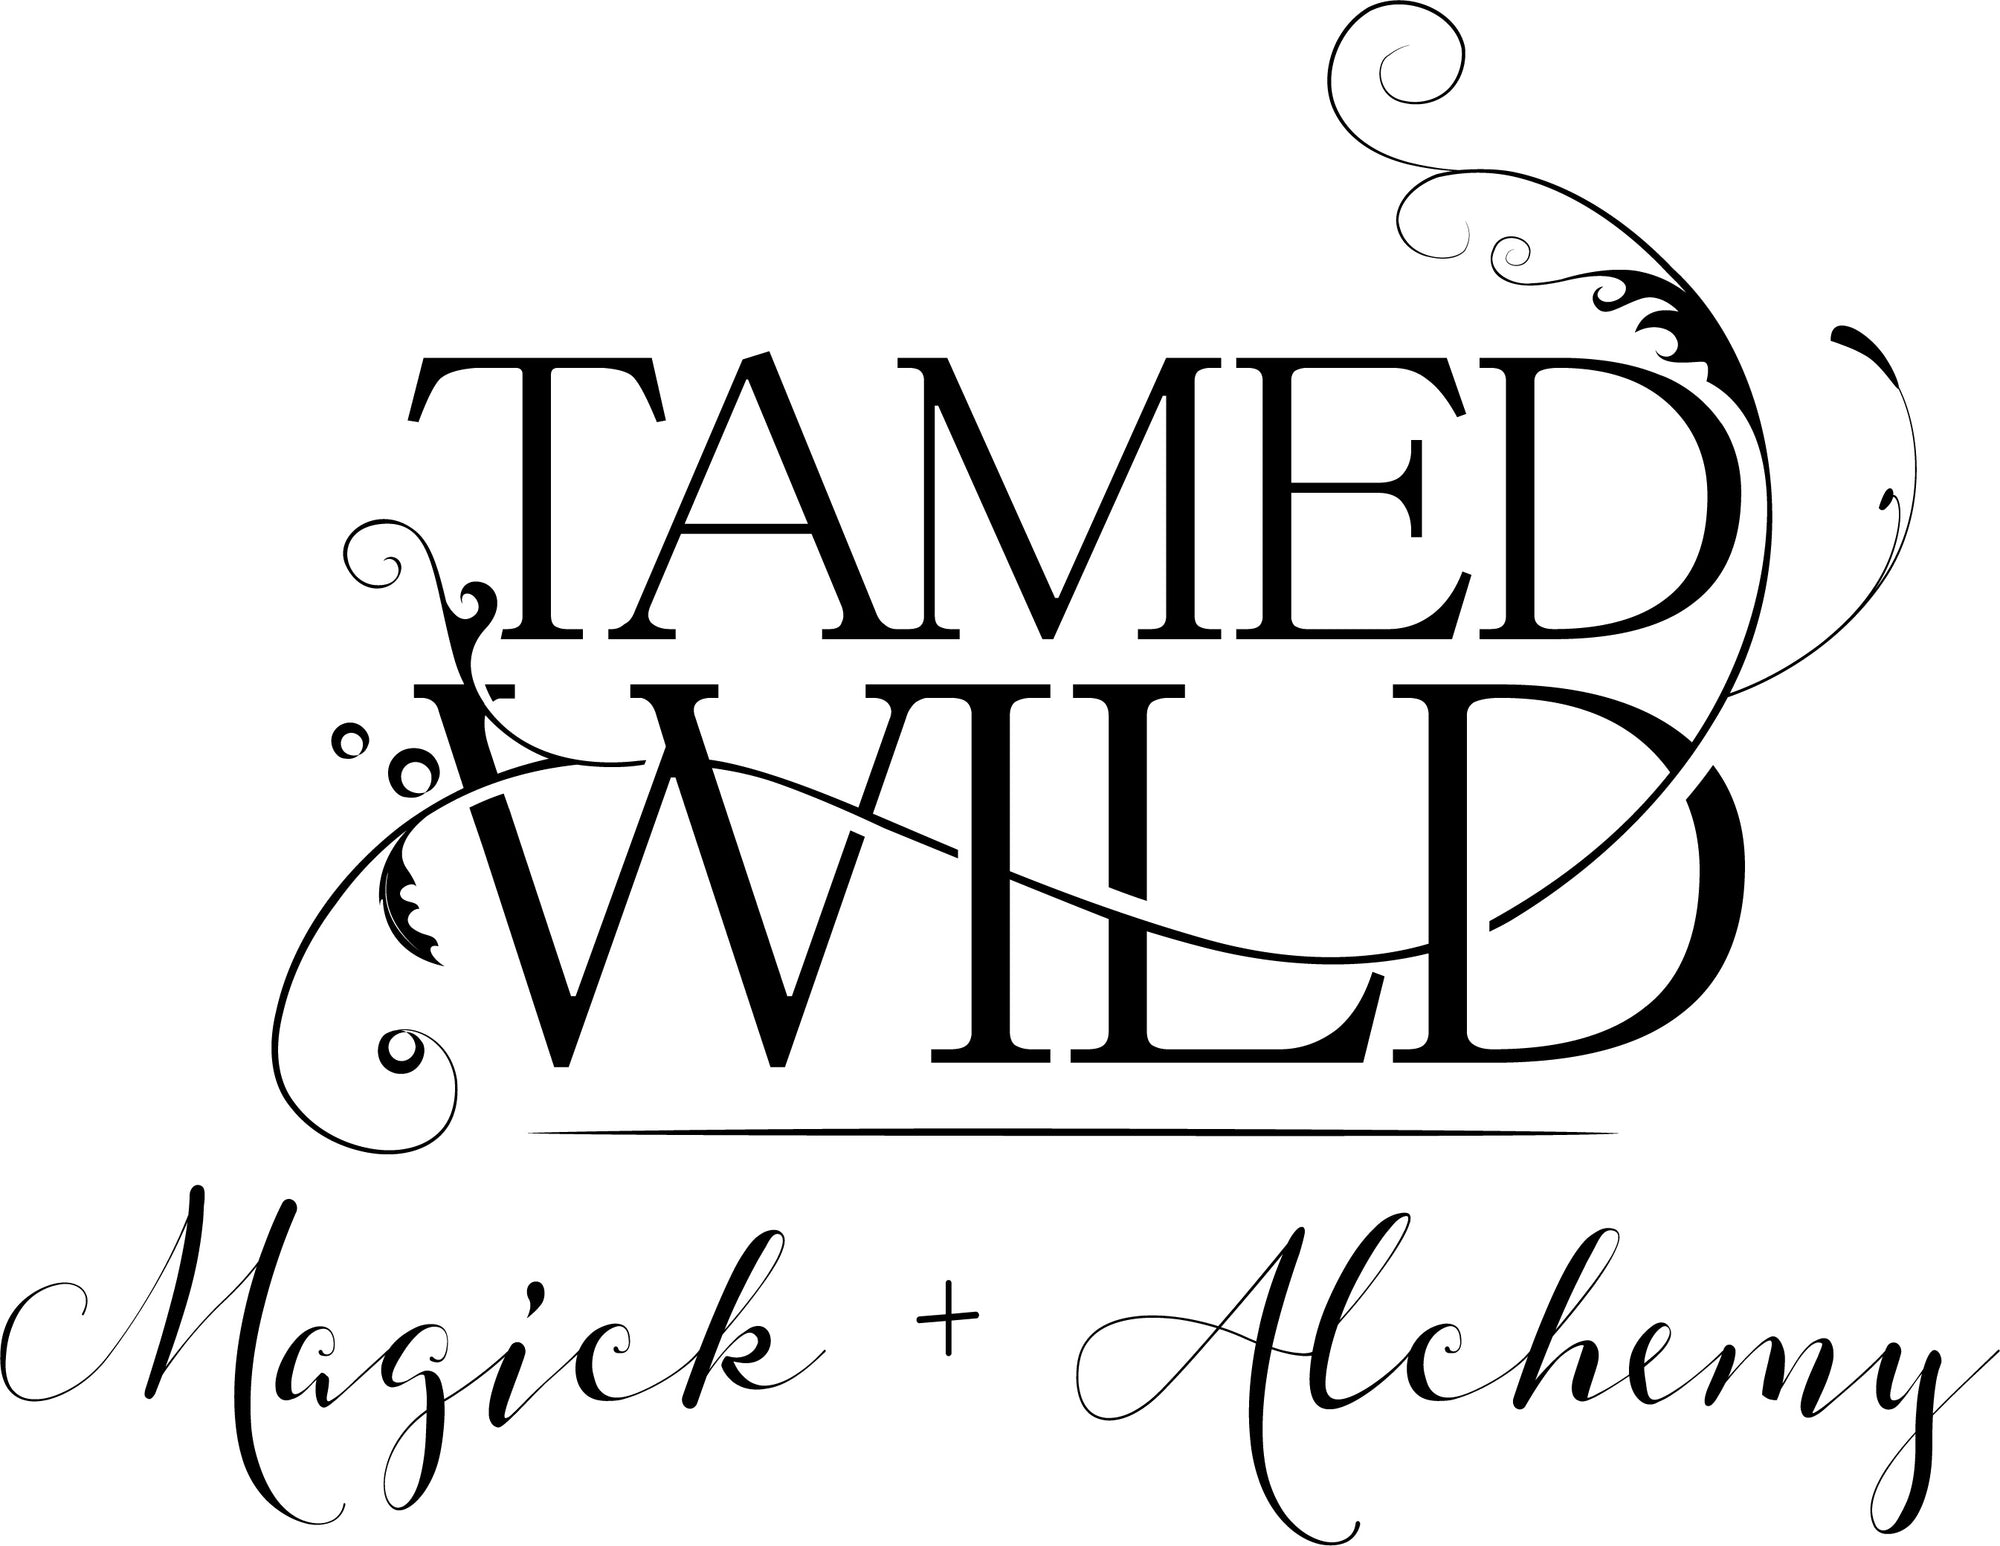 Tamed Wild Apothecary